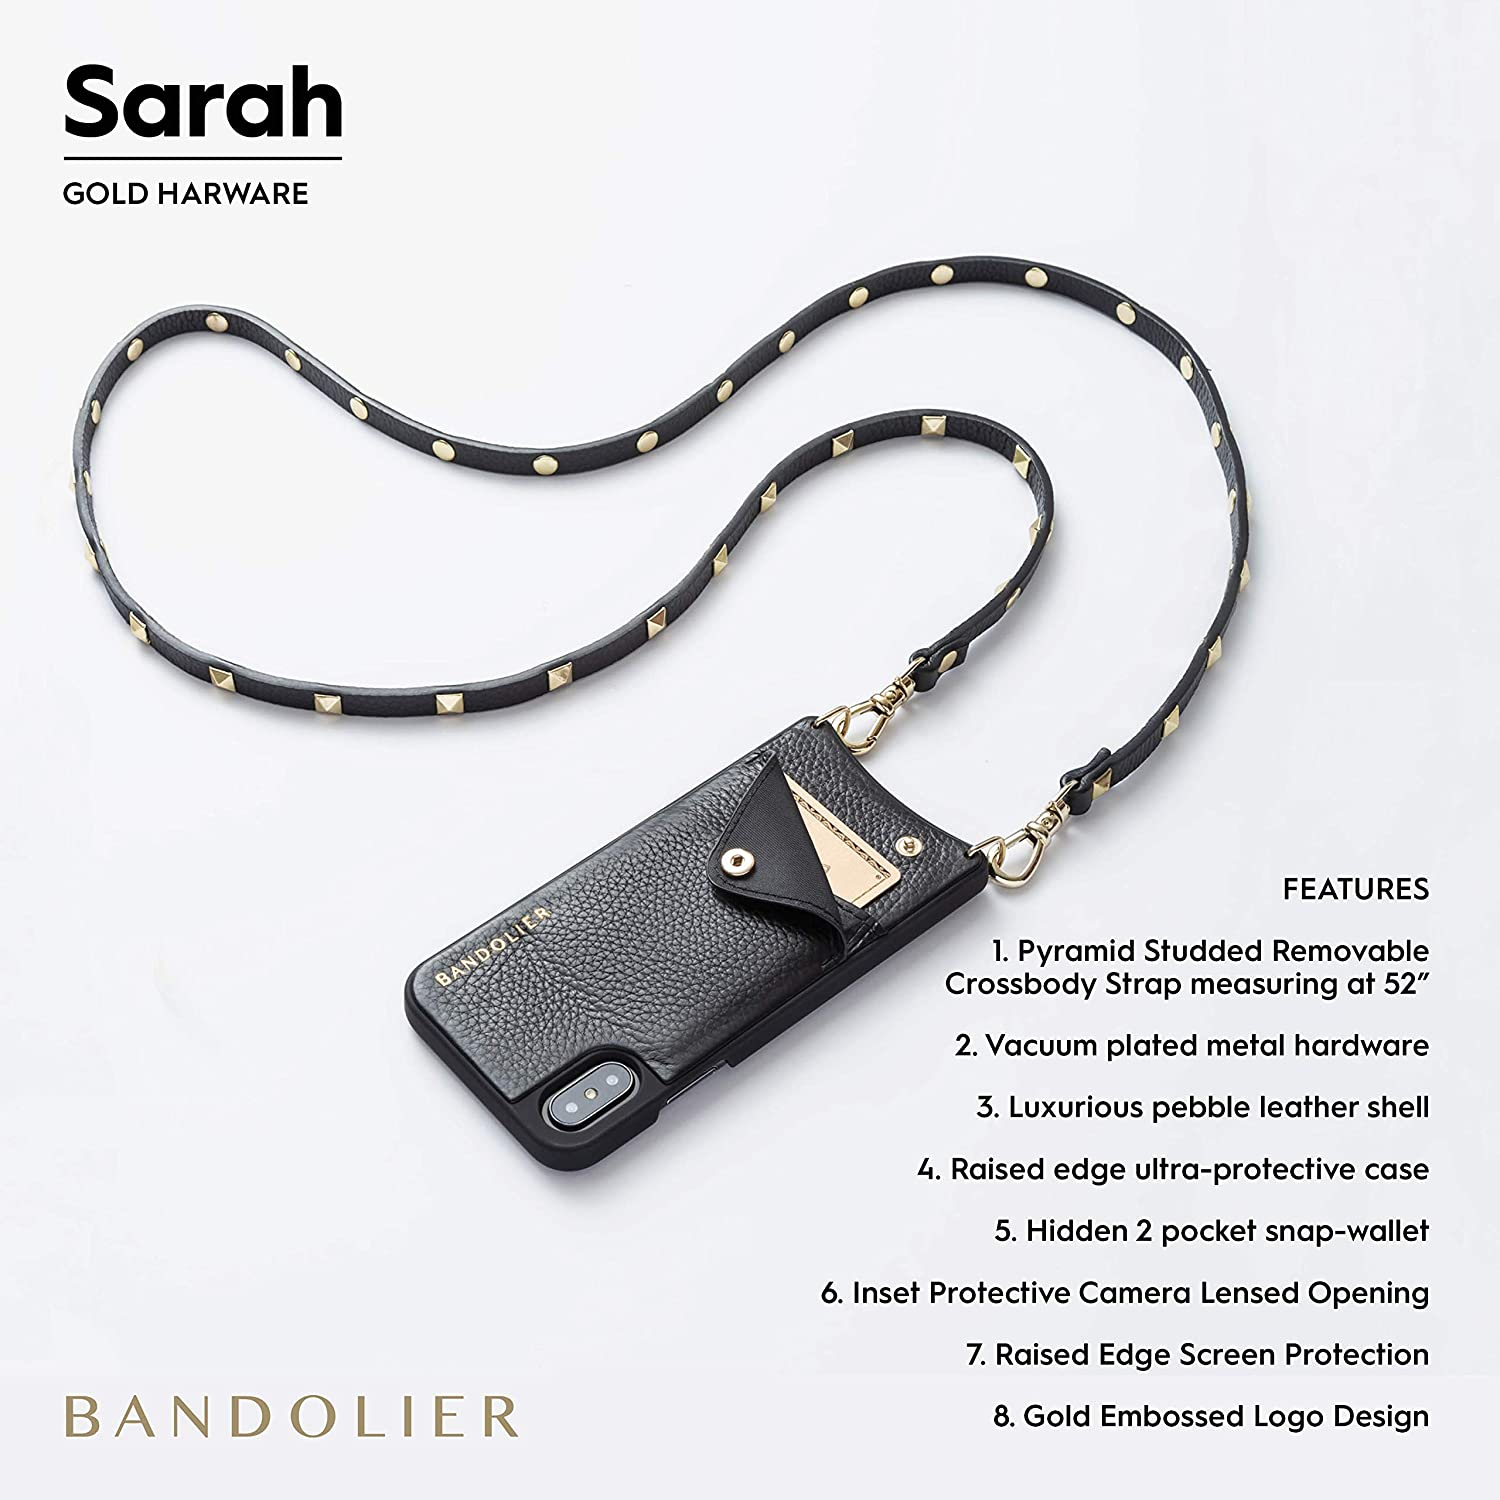 Compatible With iPhone XS Max Only Black Leather With Gold Detail Bandolier Sarah Crossbody Phone Case and Wallet